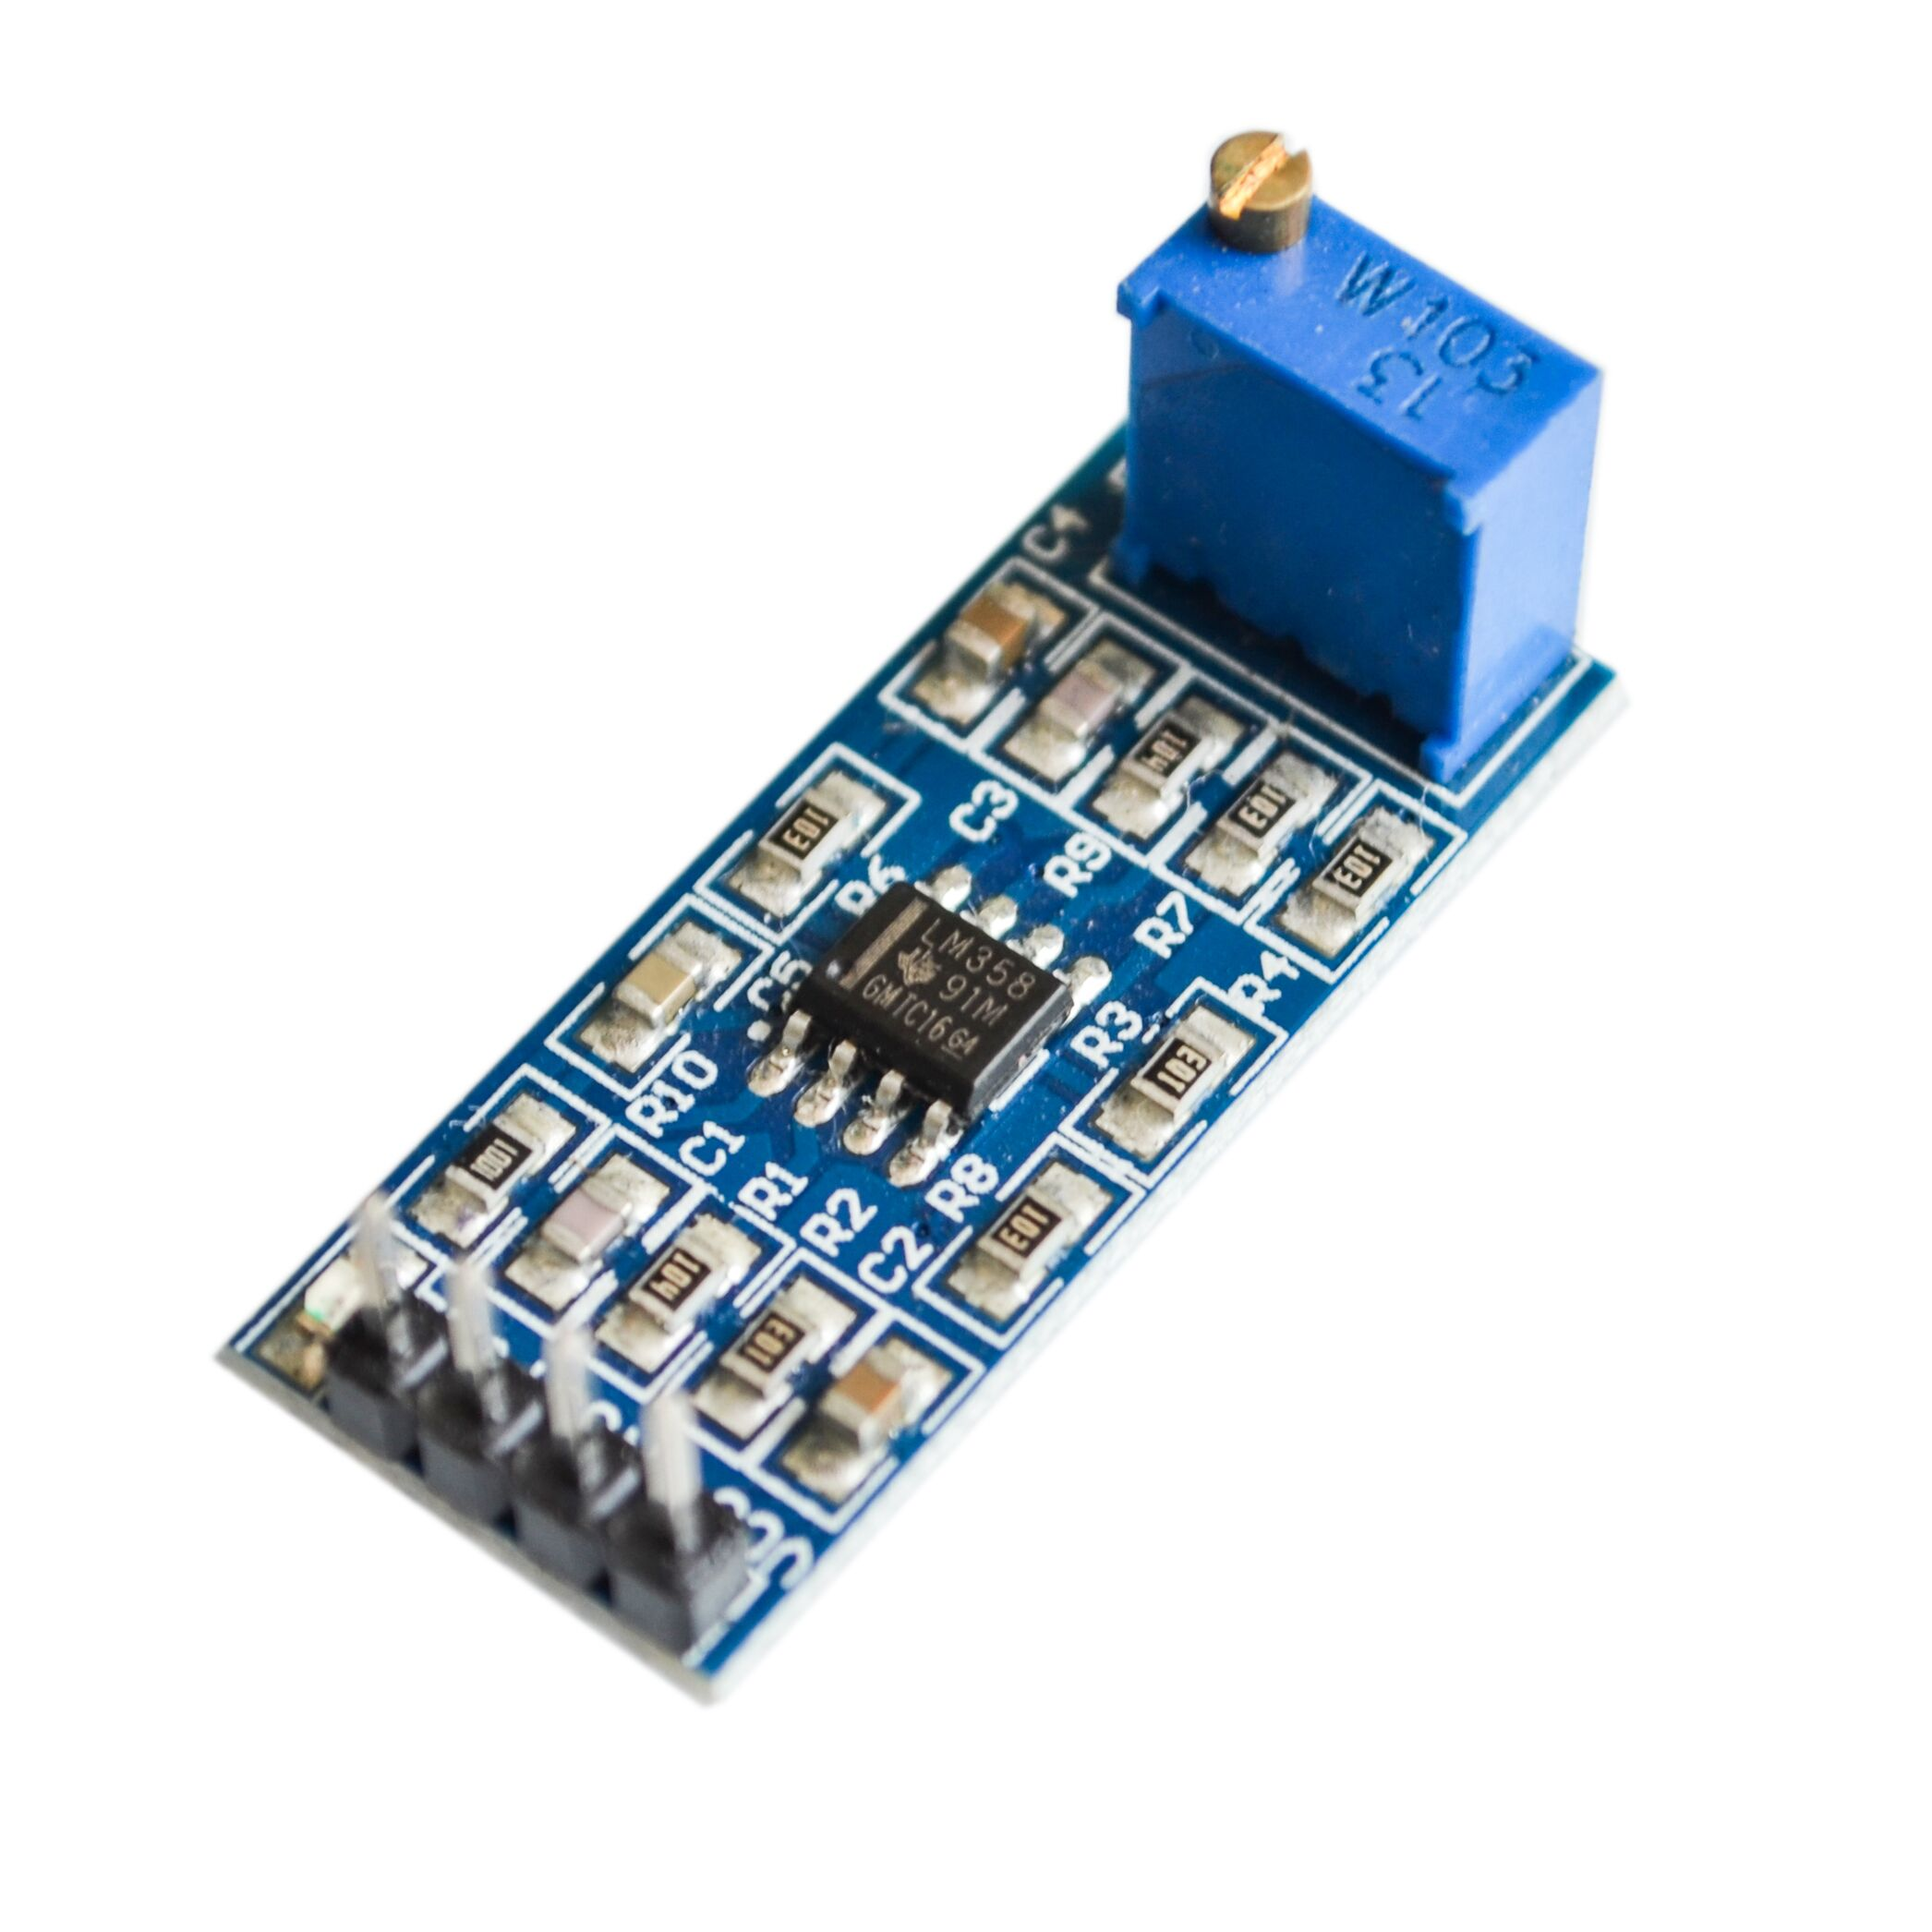 Lm358 100 Times Gain Amplification Module Operational Amplifier Thermometer Circuit Schematic Using Amplifiers In Integrated Circuits From Electronic Components Supplies On